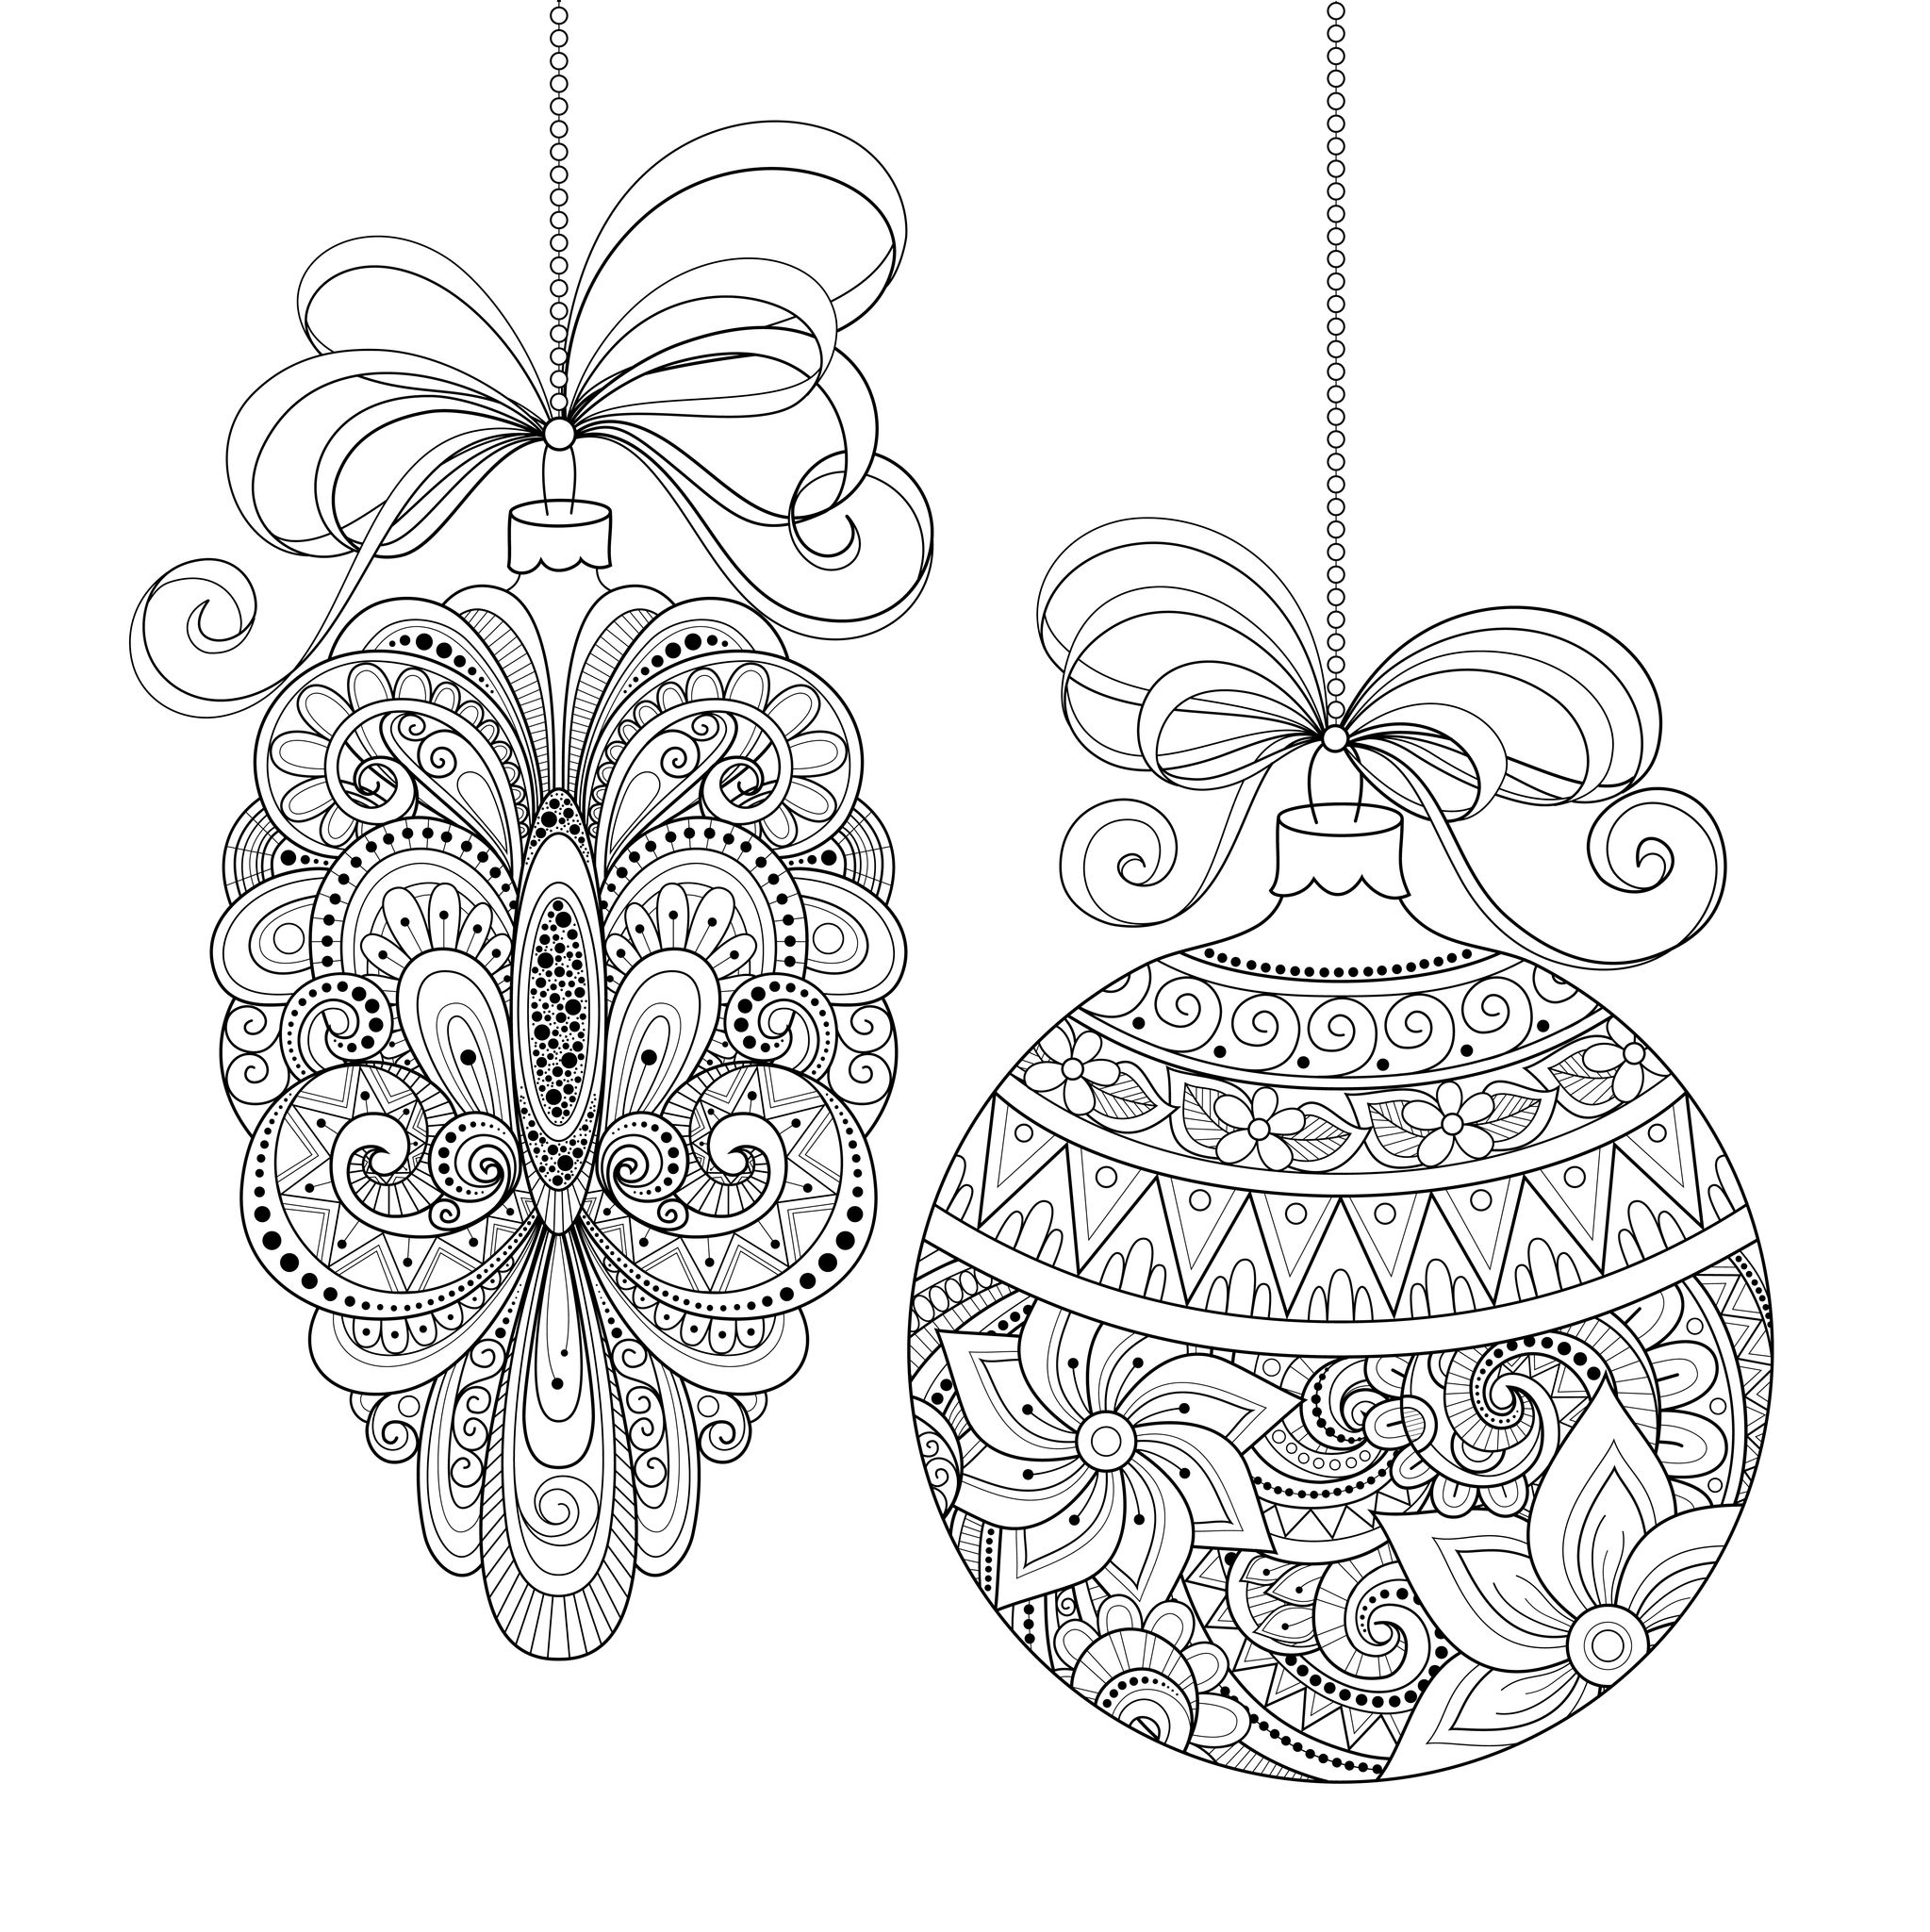 48006340 - vector ornate monochrome christmas decorations. patterned objects for greeting cards, holiday greetings. new year and christmas templateA partir de la galerie : Noel